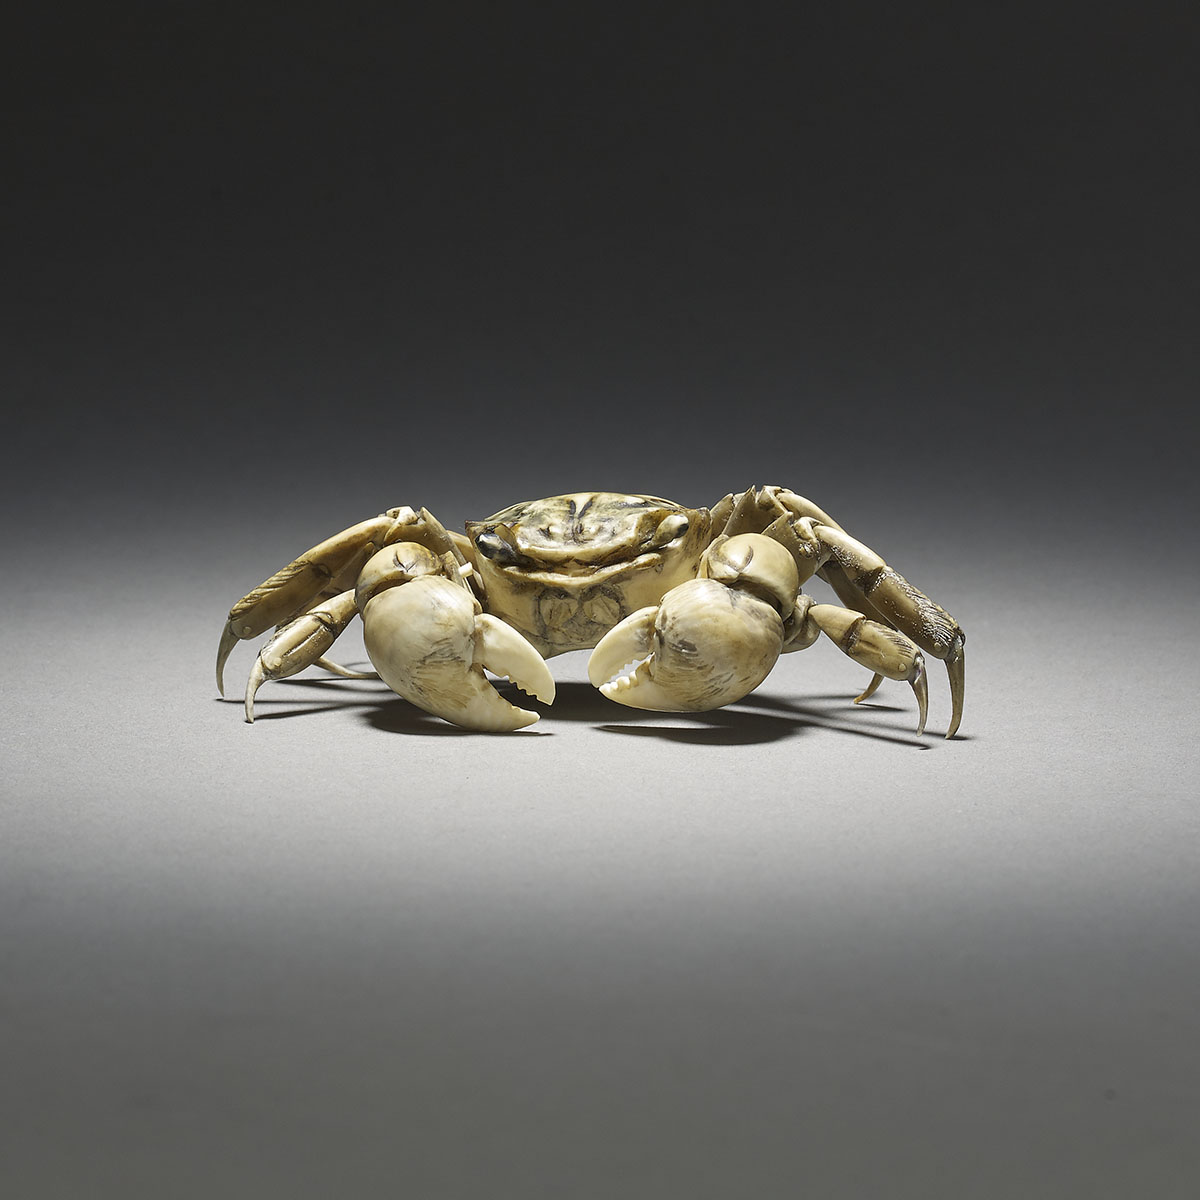 Ivory articulated crab